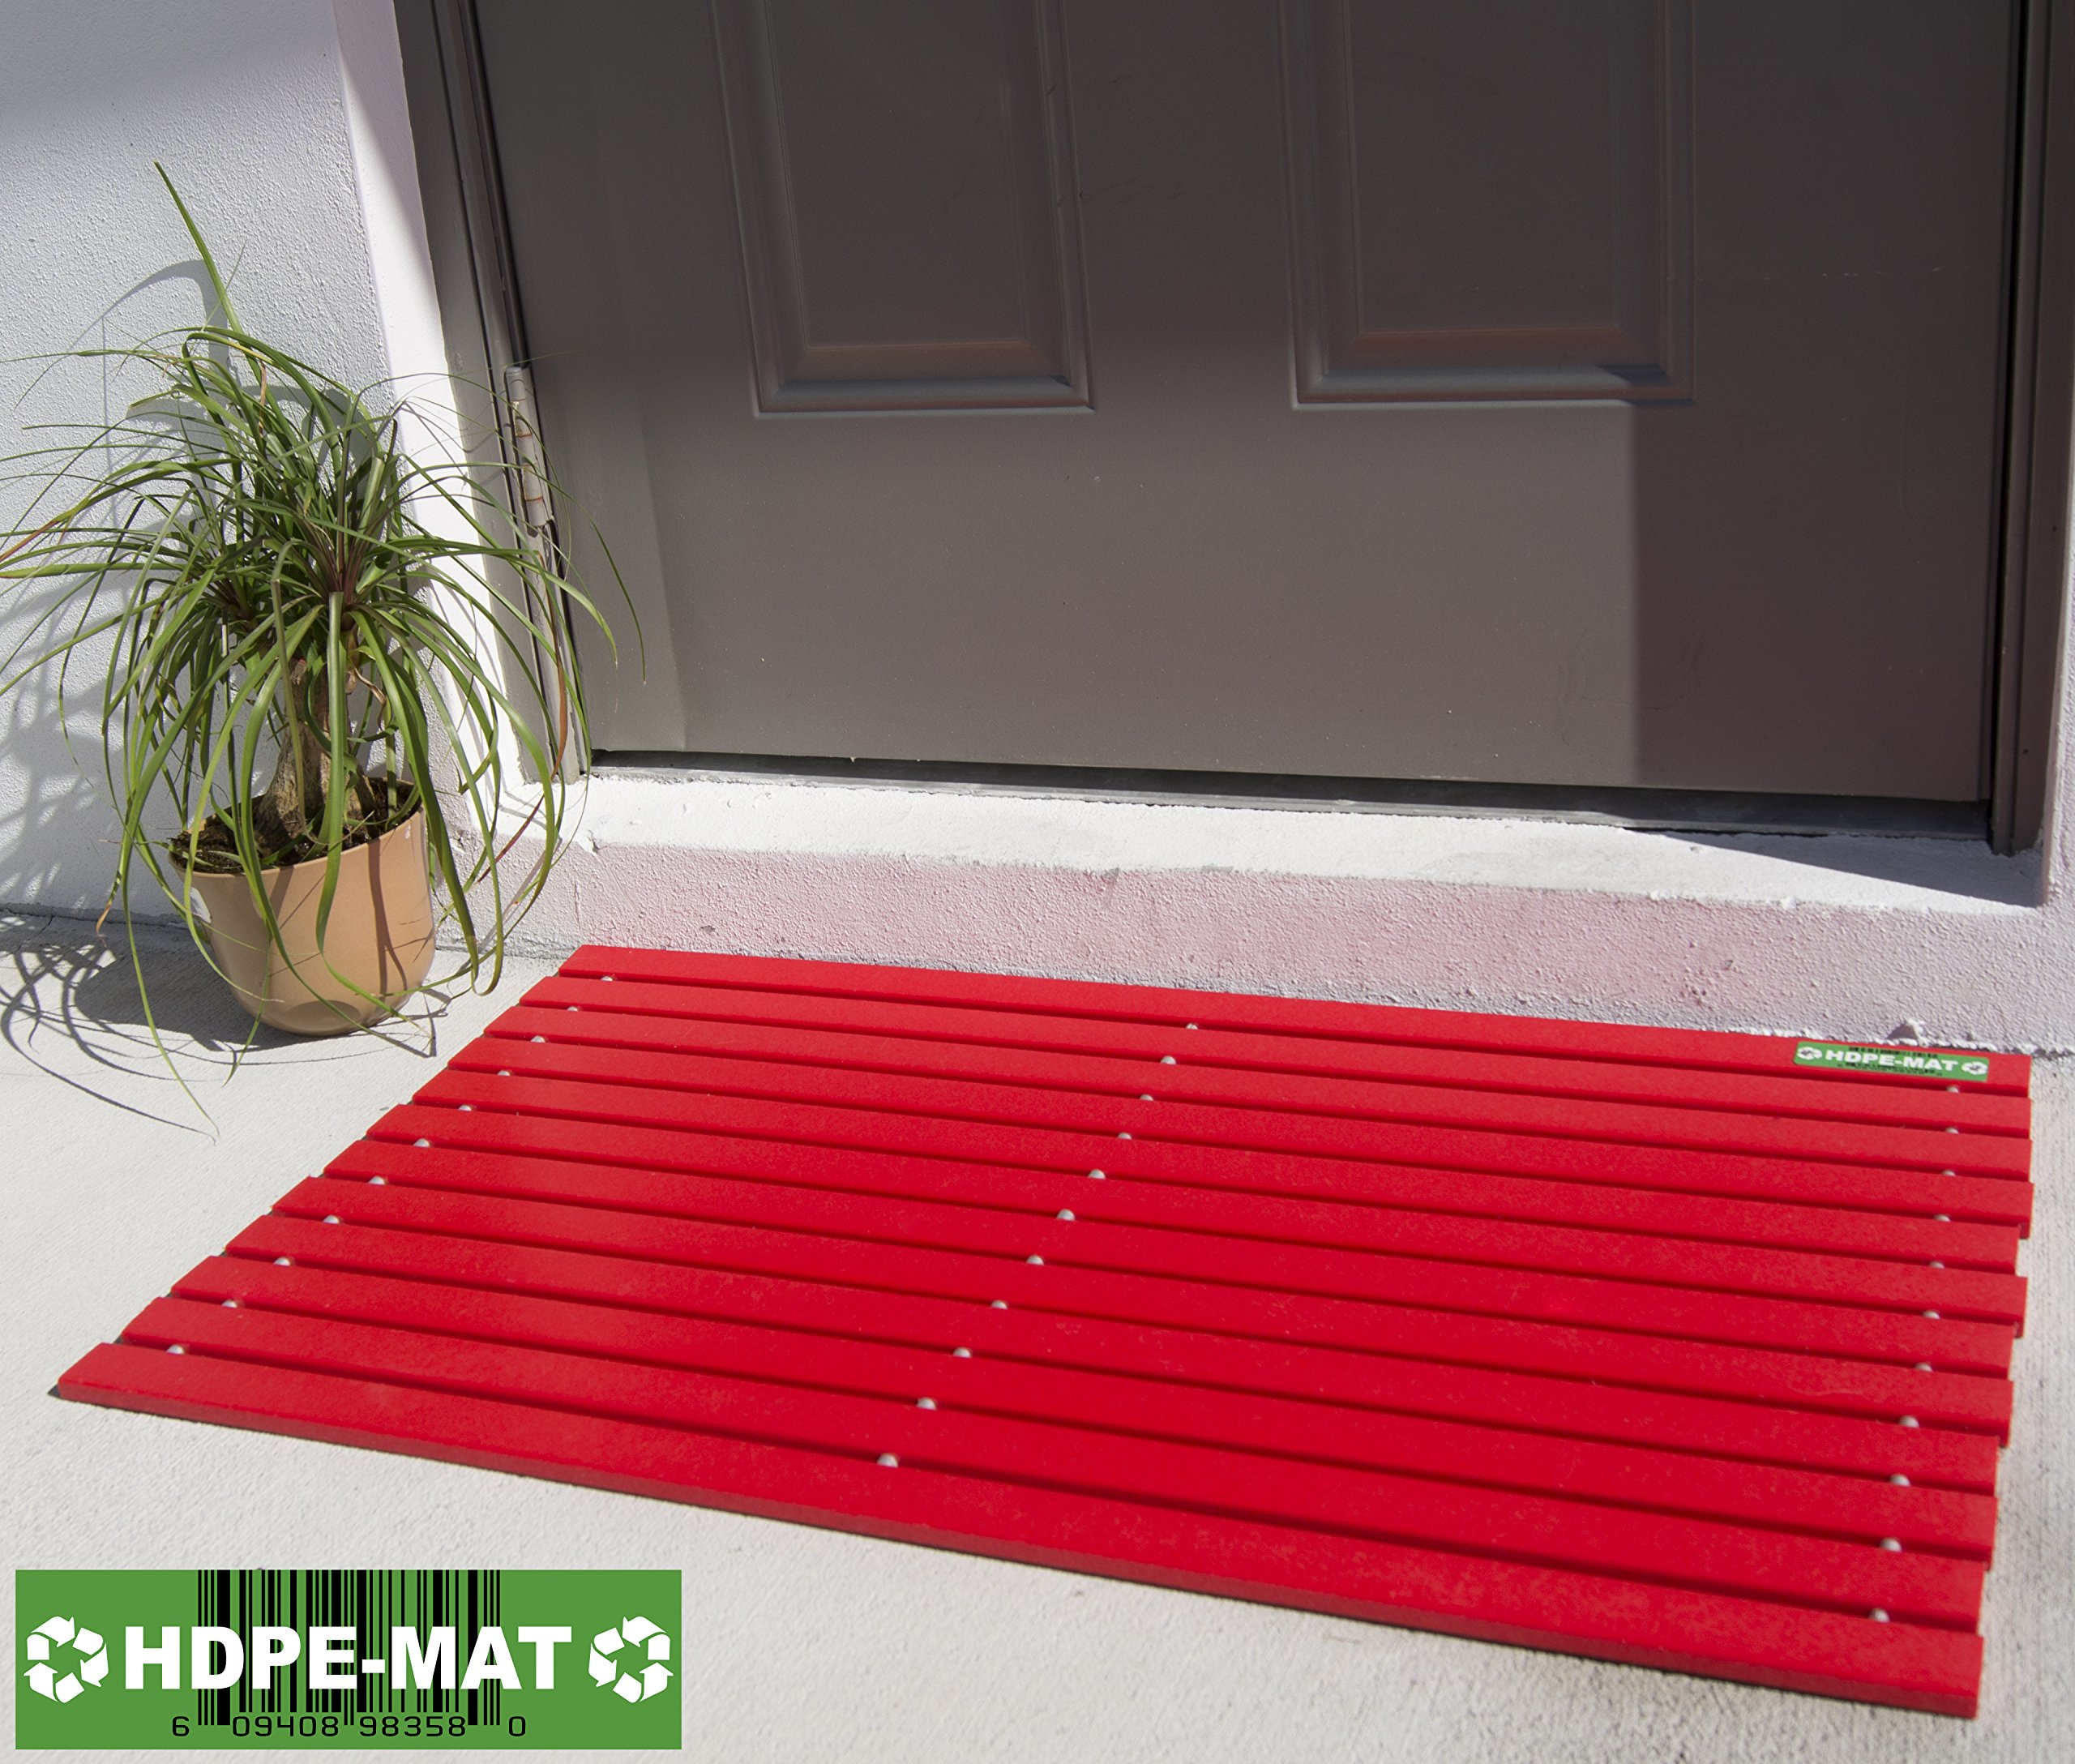 Heavy Duty Waterproof Front Door Mat | Eco Friendly | Stylish Handcrafted Red Recycled Plastic Poly Lumber Slats - Welcome Doormat For Outdoor Entrance Porch Garage Patio Entry | UV Resistant HDPE-MAT